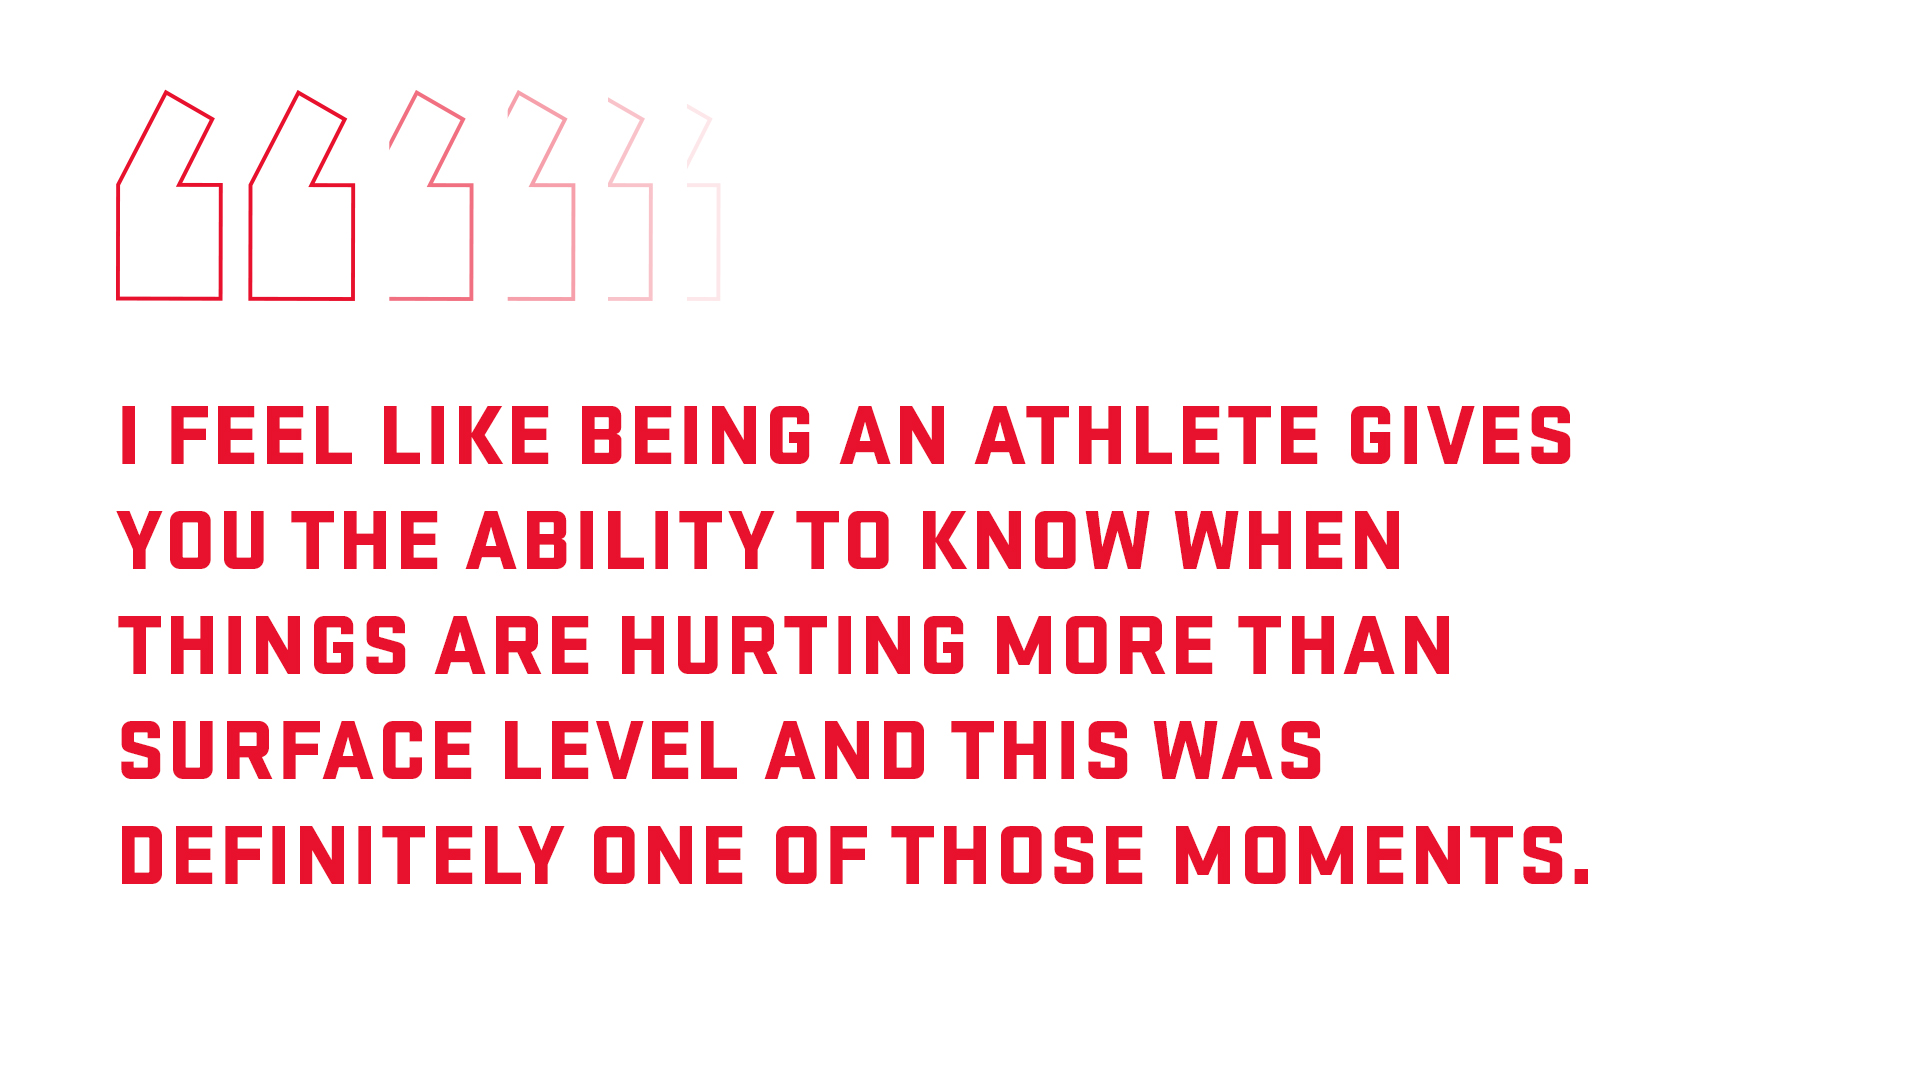 Pull quote: I feel like being an athlete gives you the ability to know when you are hurting more than surface level and this was definitely one of those moments.